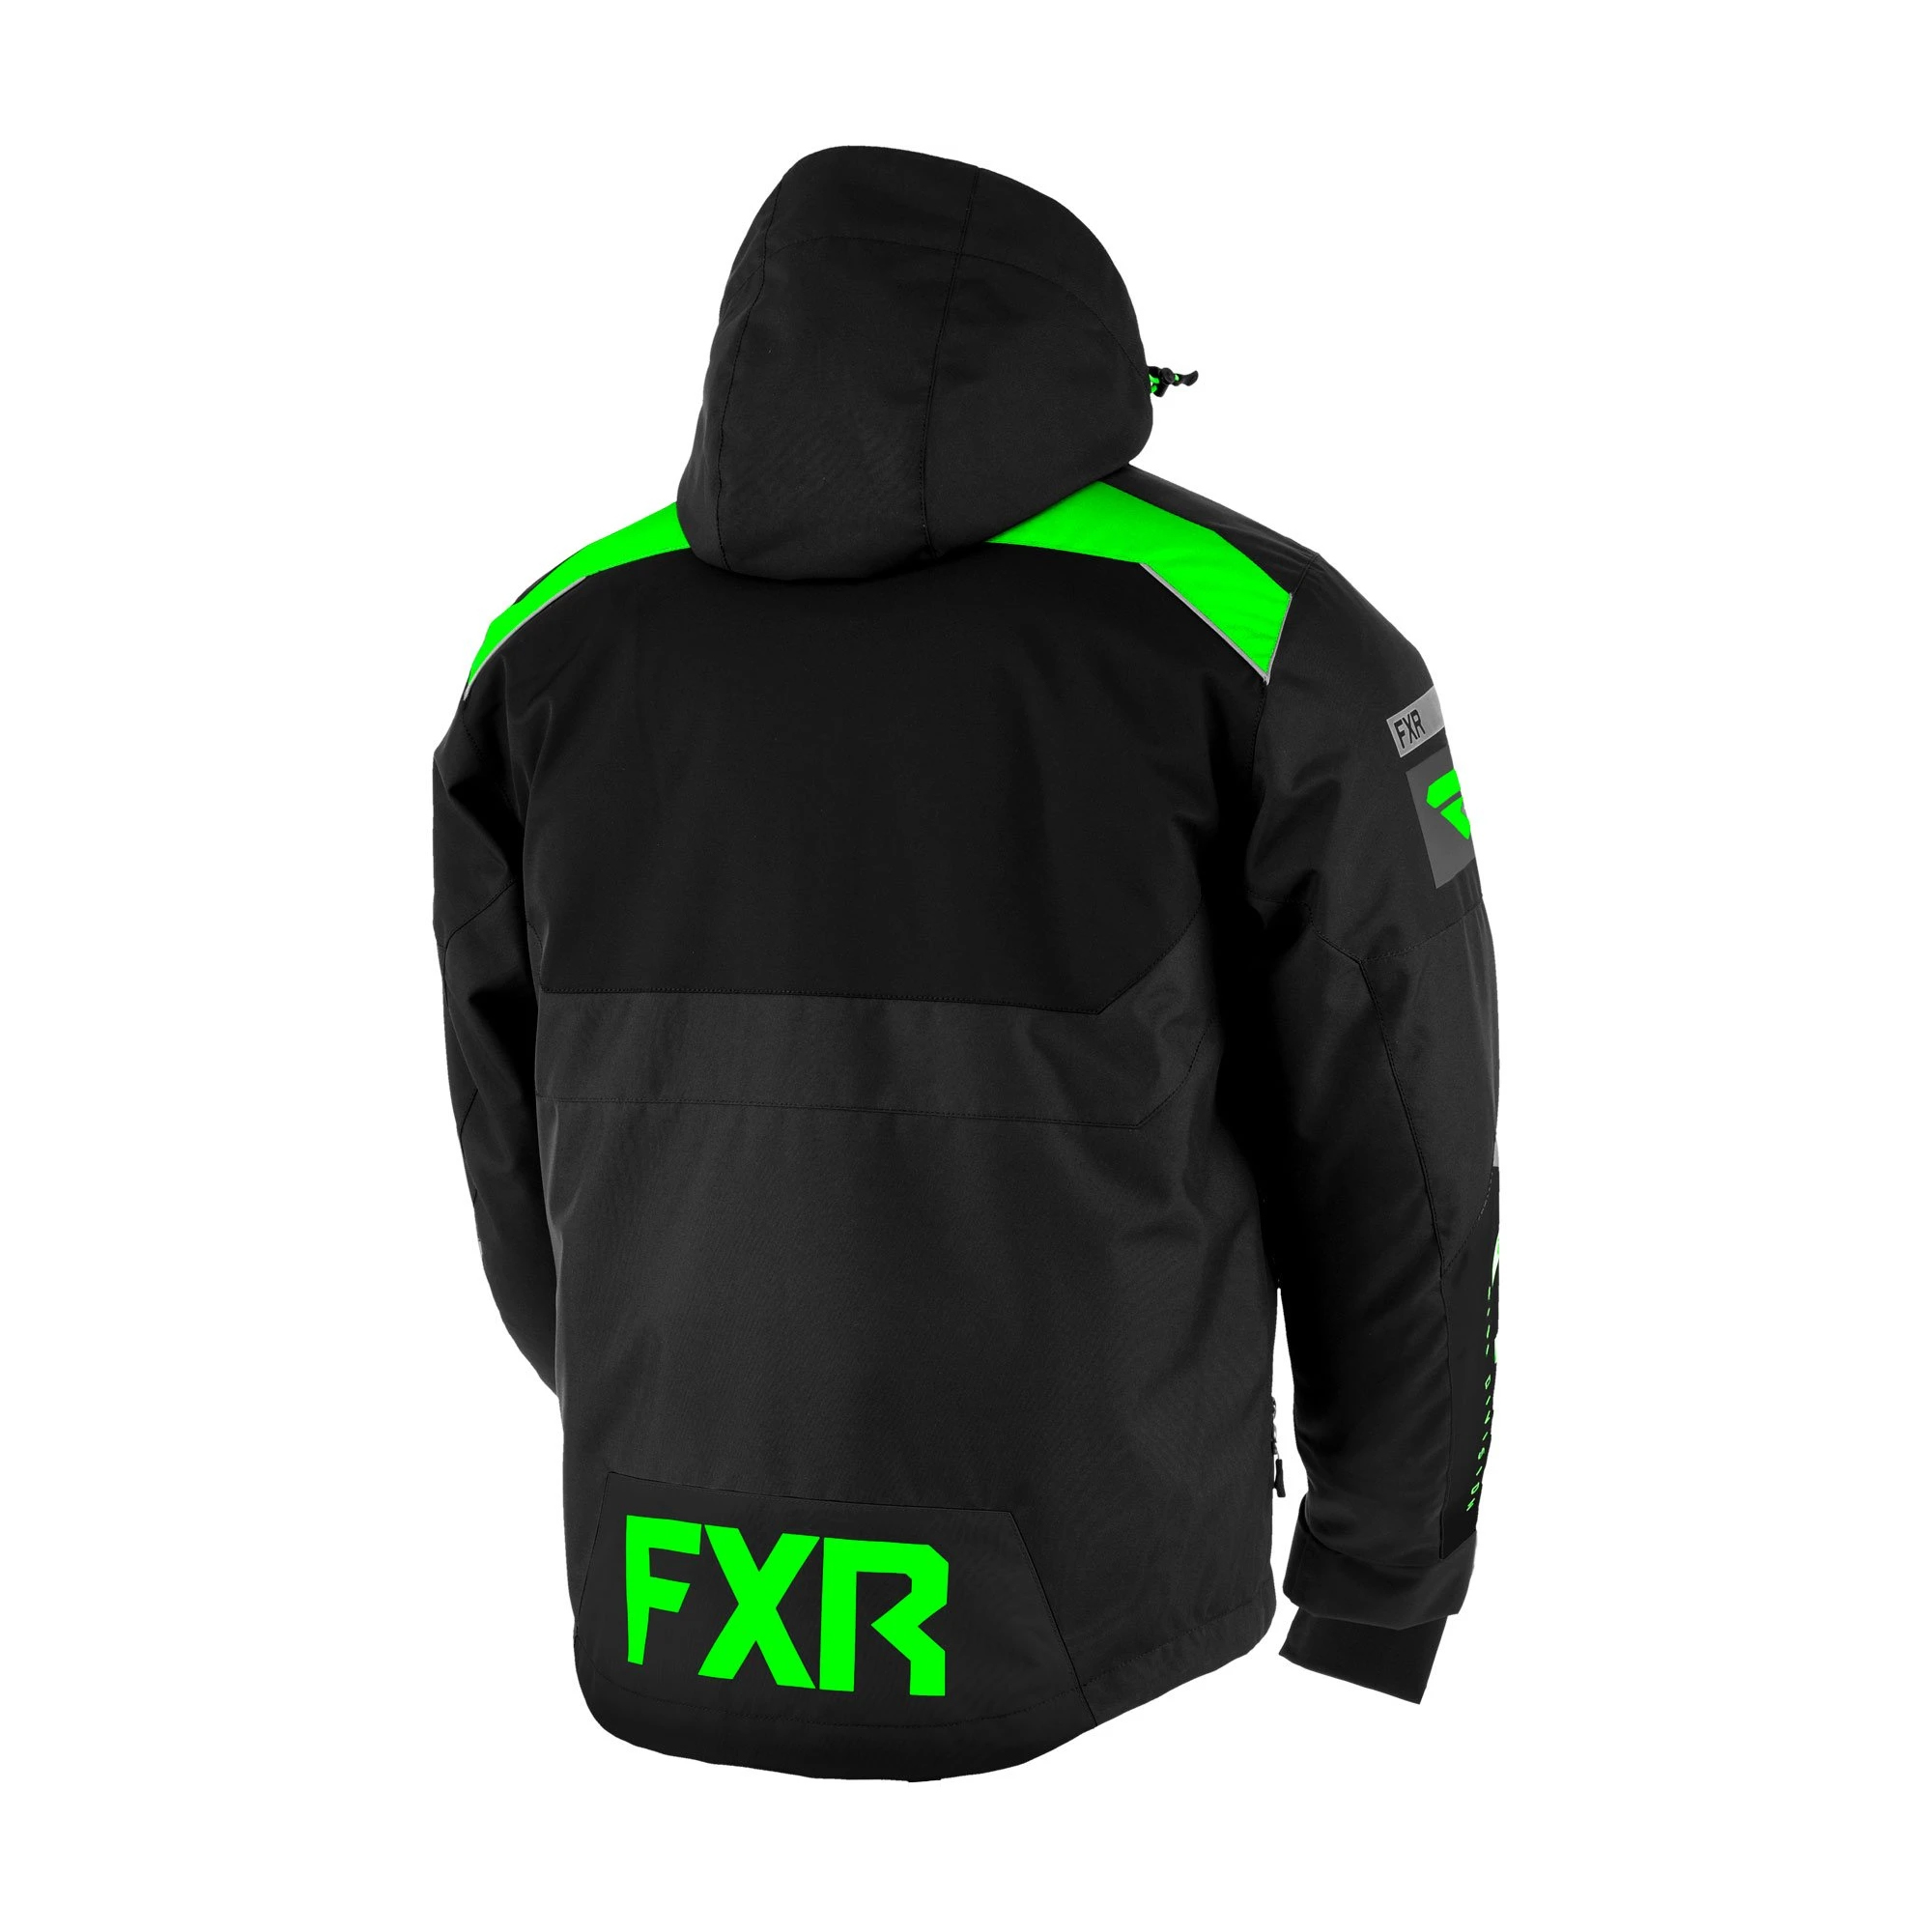 thumbnail 4 - FXR-Helium-X-Jacket-Removable-Thermal-Dry-Liner-Breathable-Snowproof-Winter-Coat